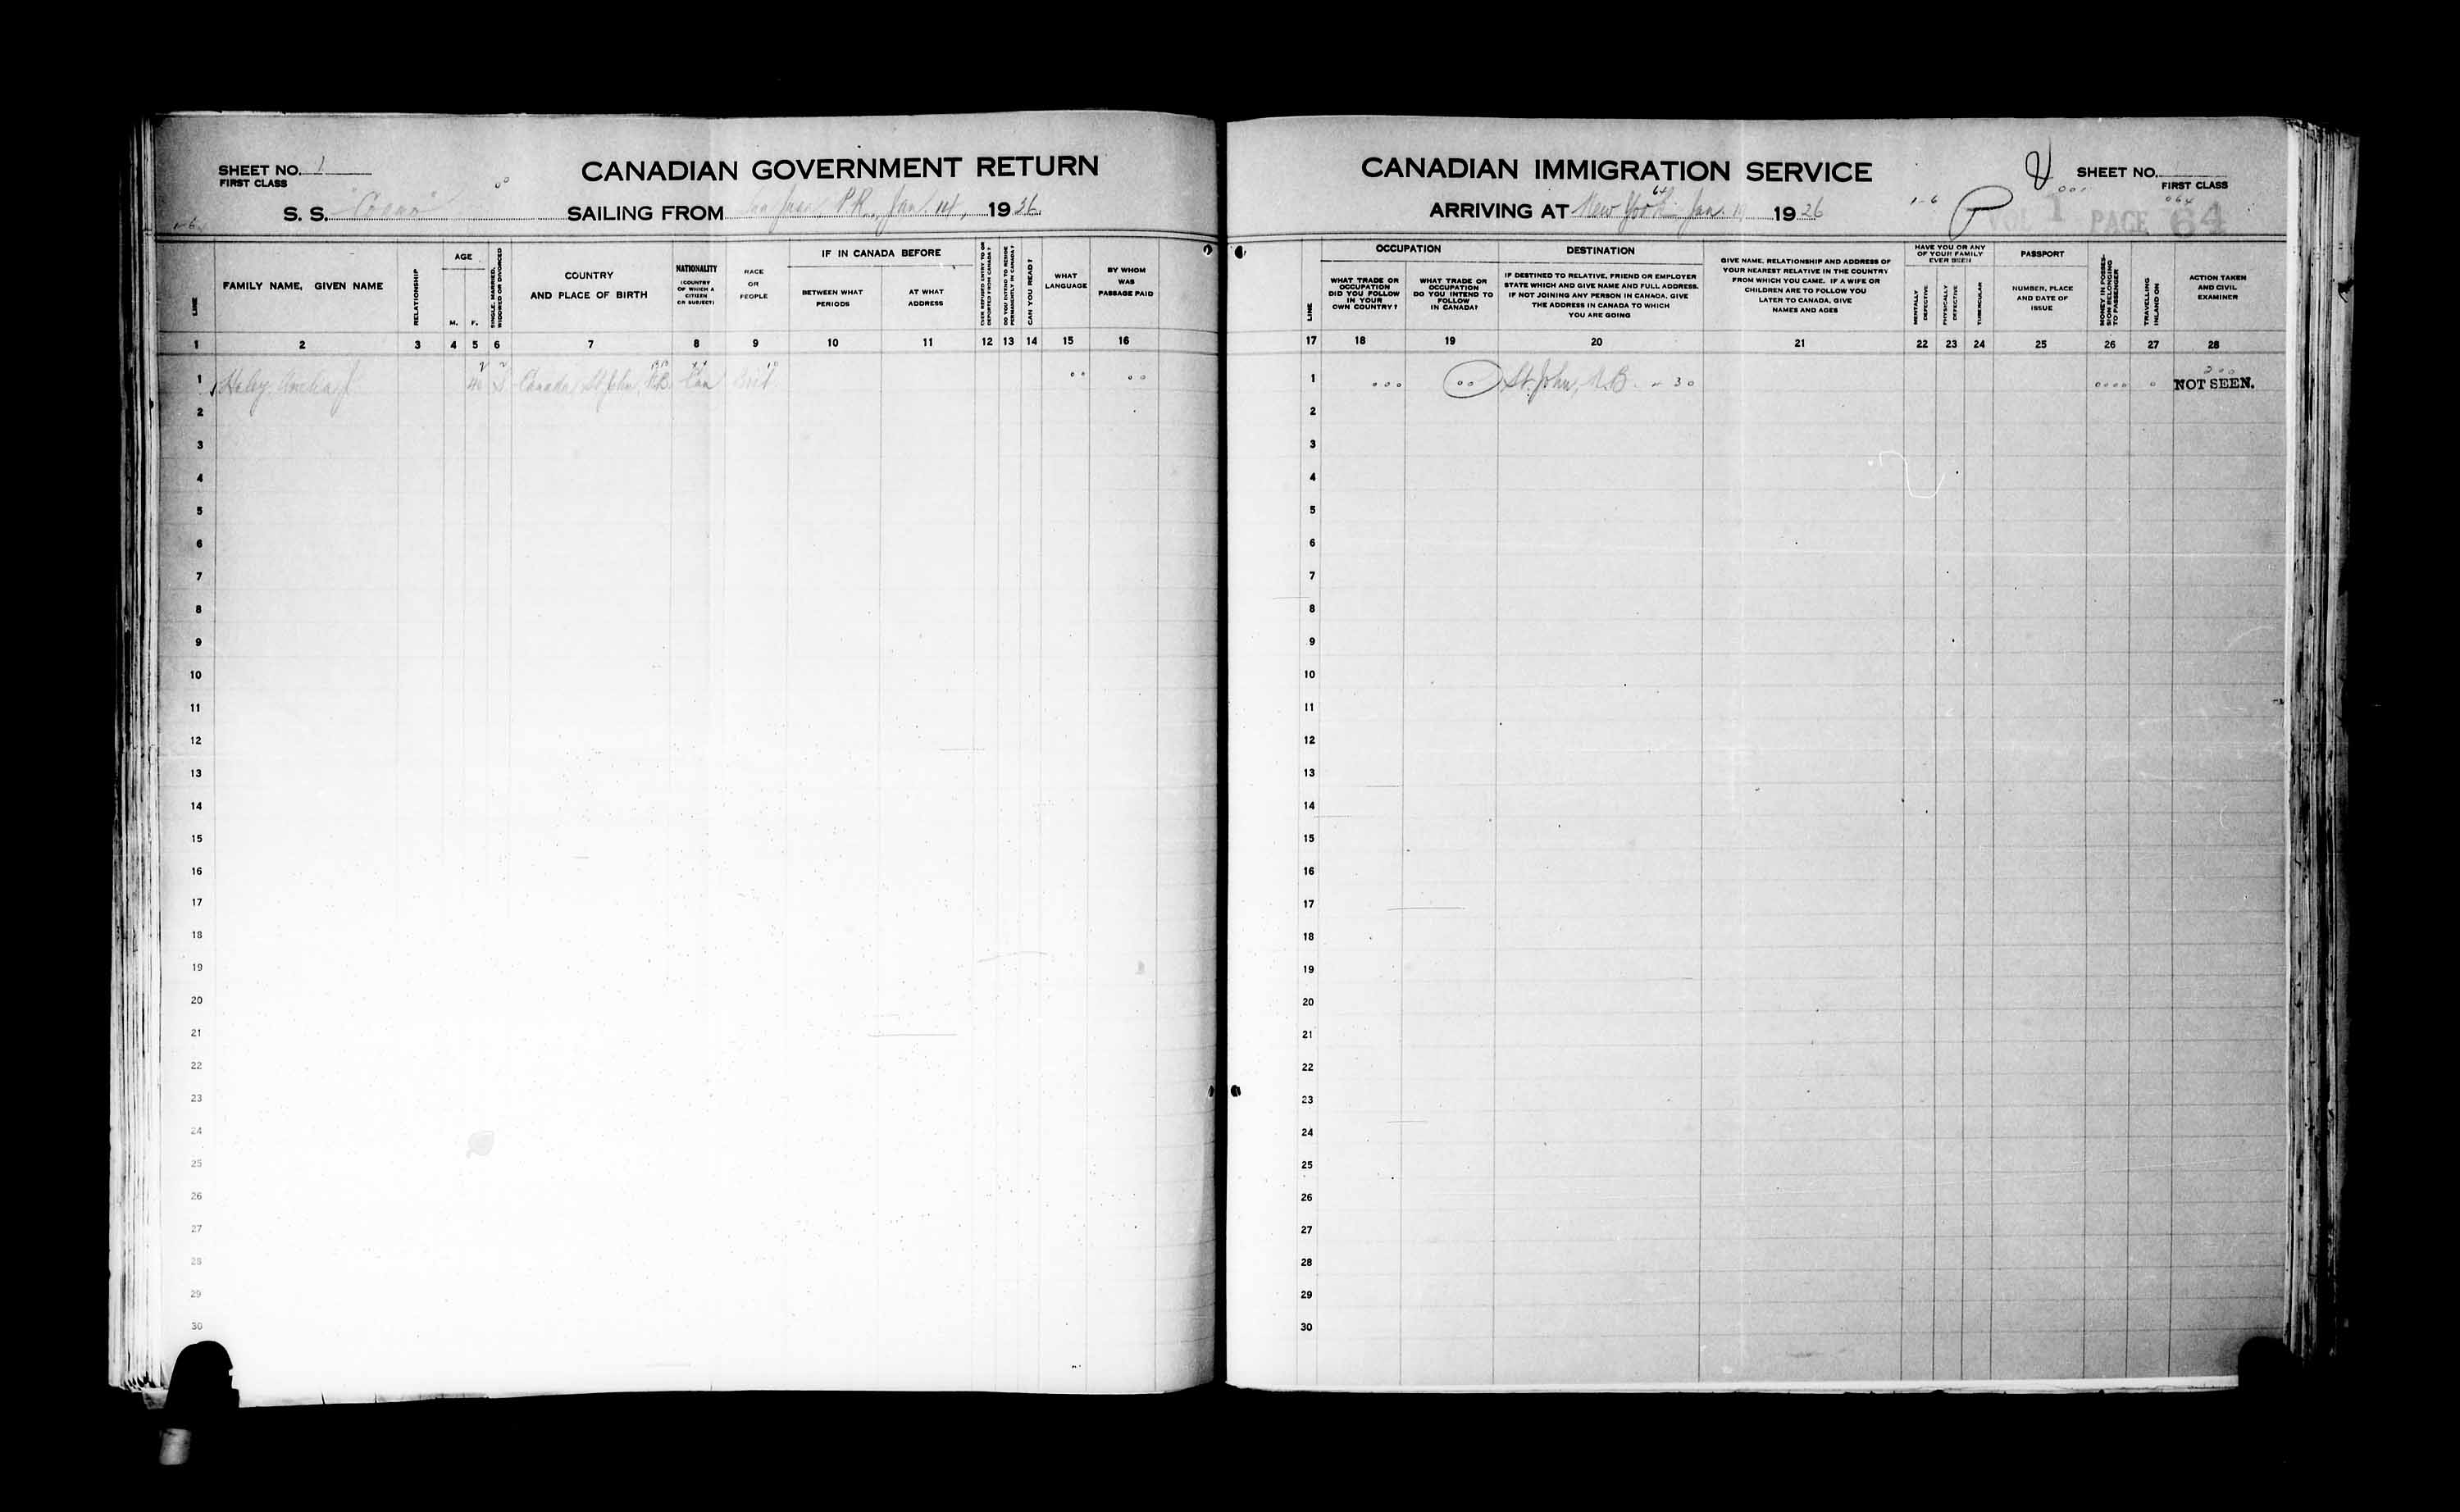 Title: Passenger Lists: New York (1925-1935) - Mikan Number: 161343 - Microform: t-14926